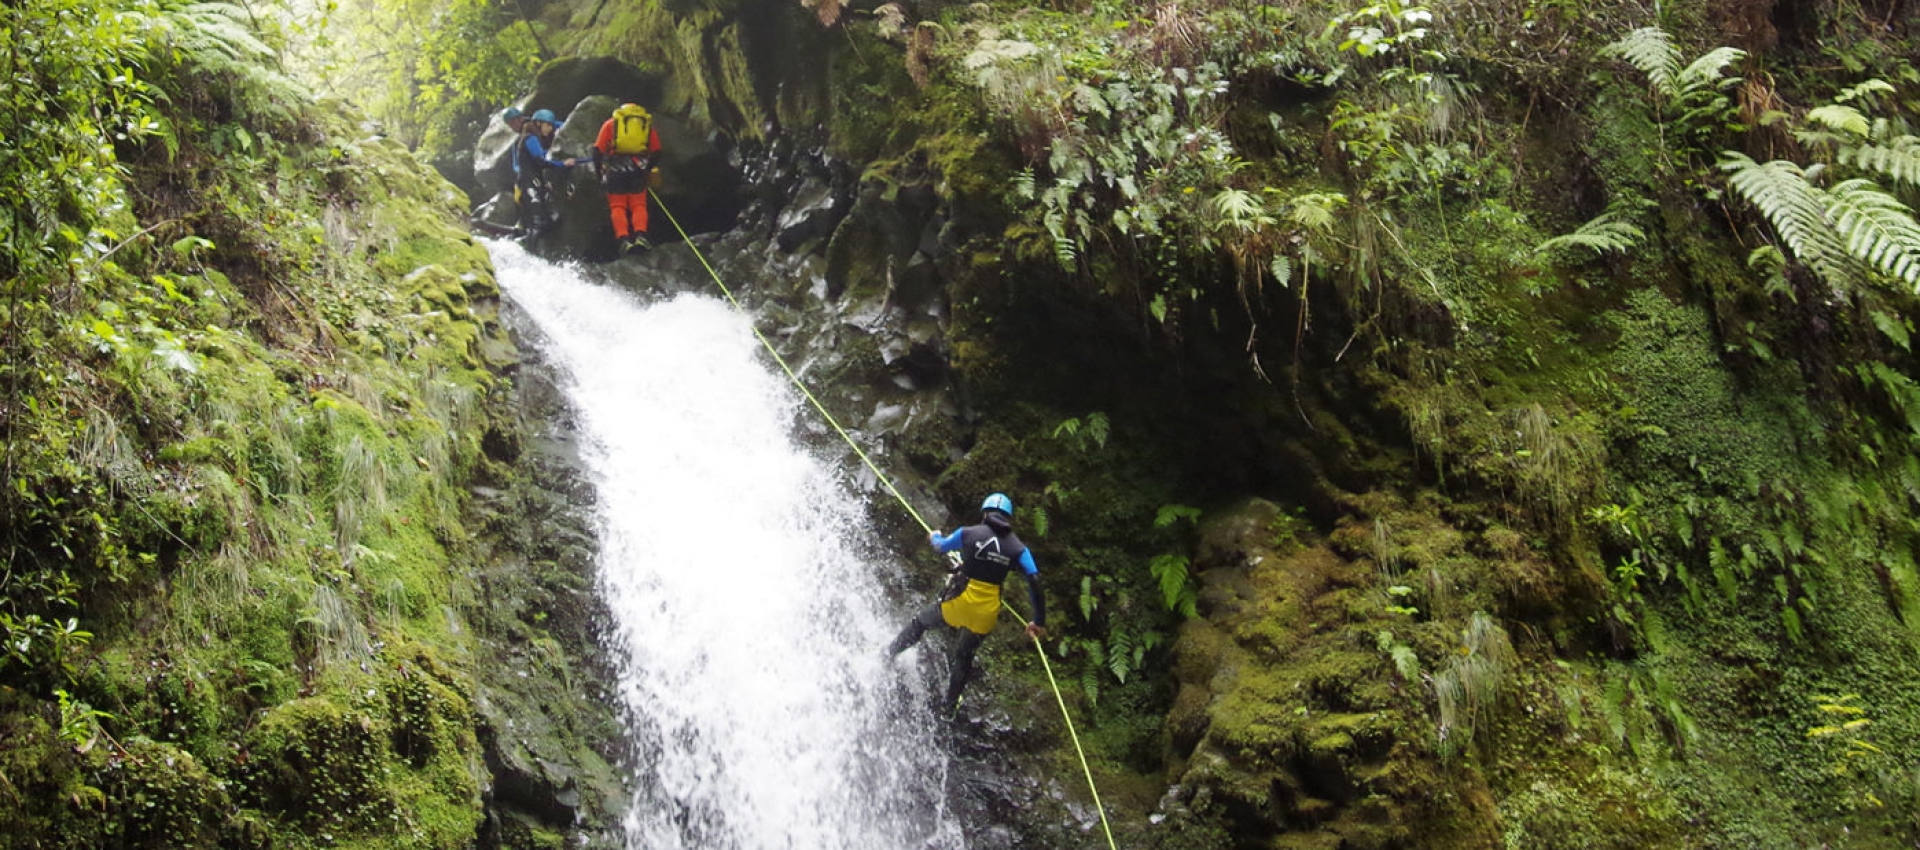 Canyoning on Madeira Island